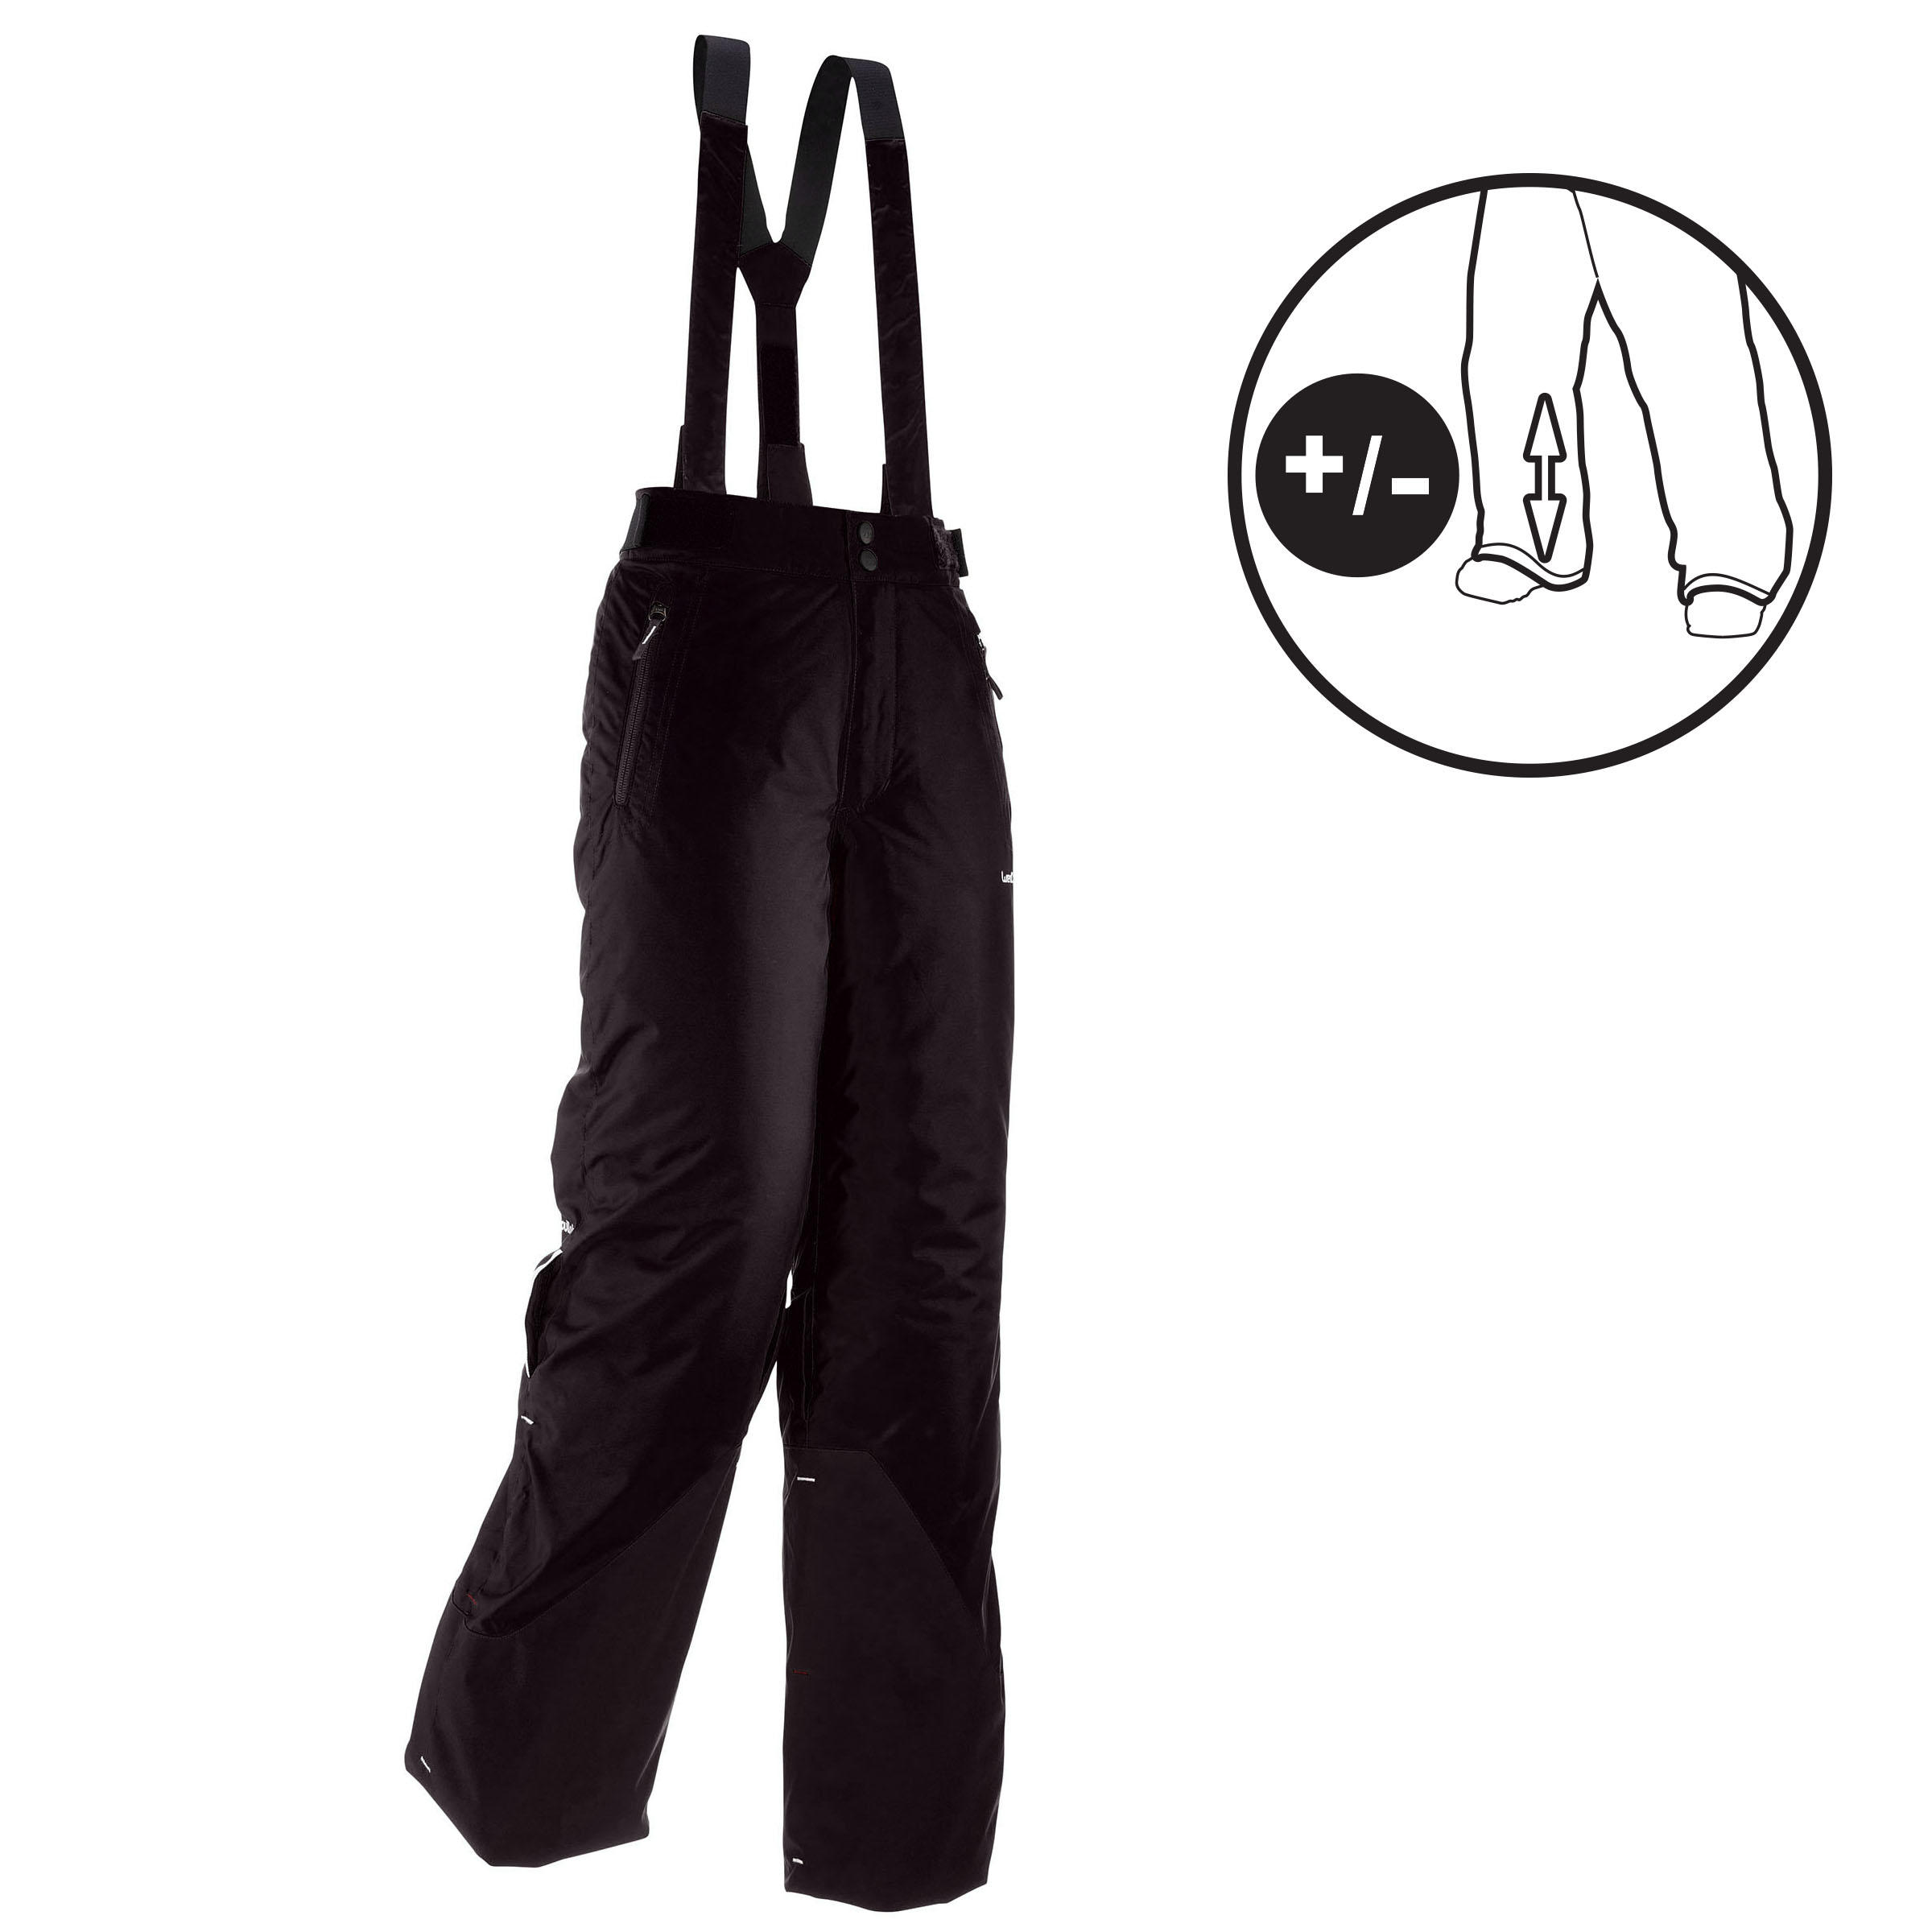 Children's Ski Pants Ski-P Pa 500 Pnf - Black